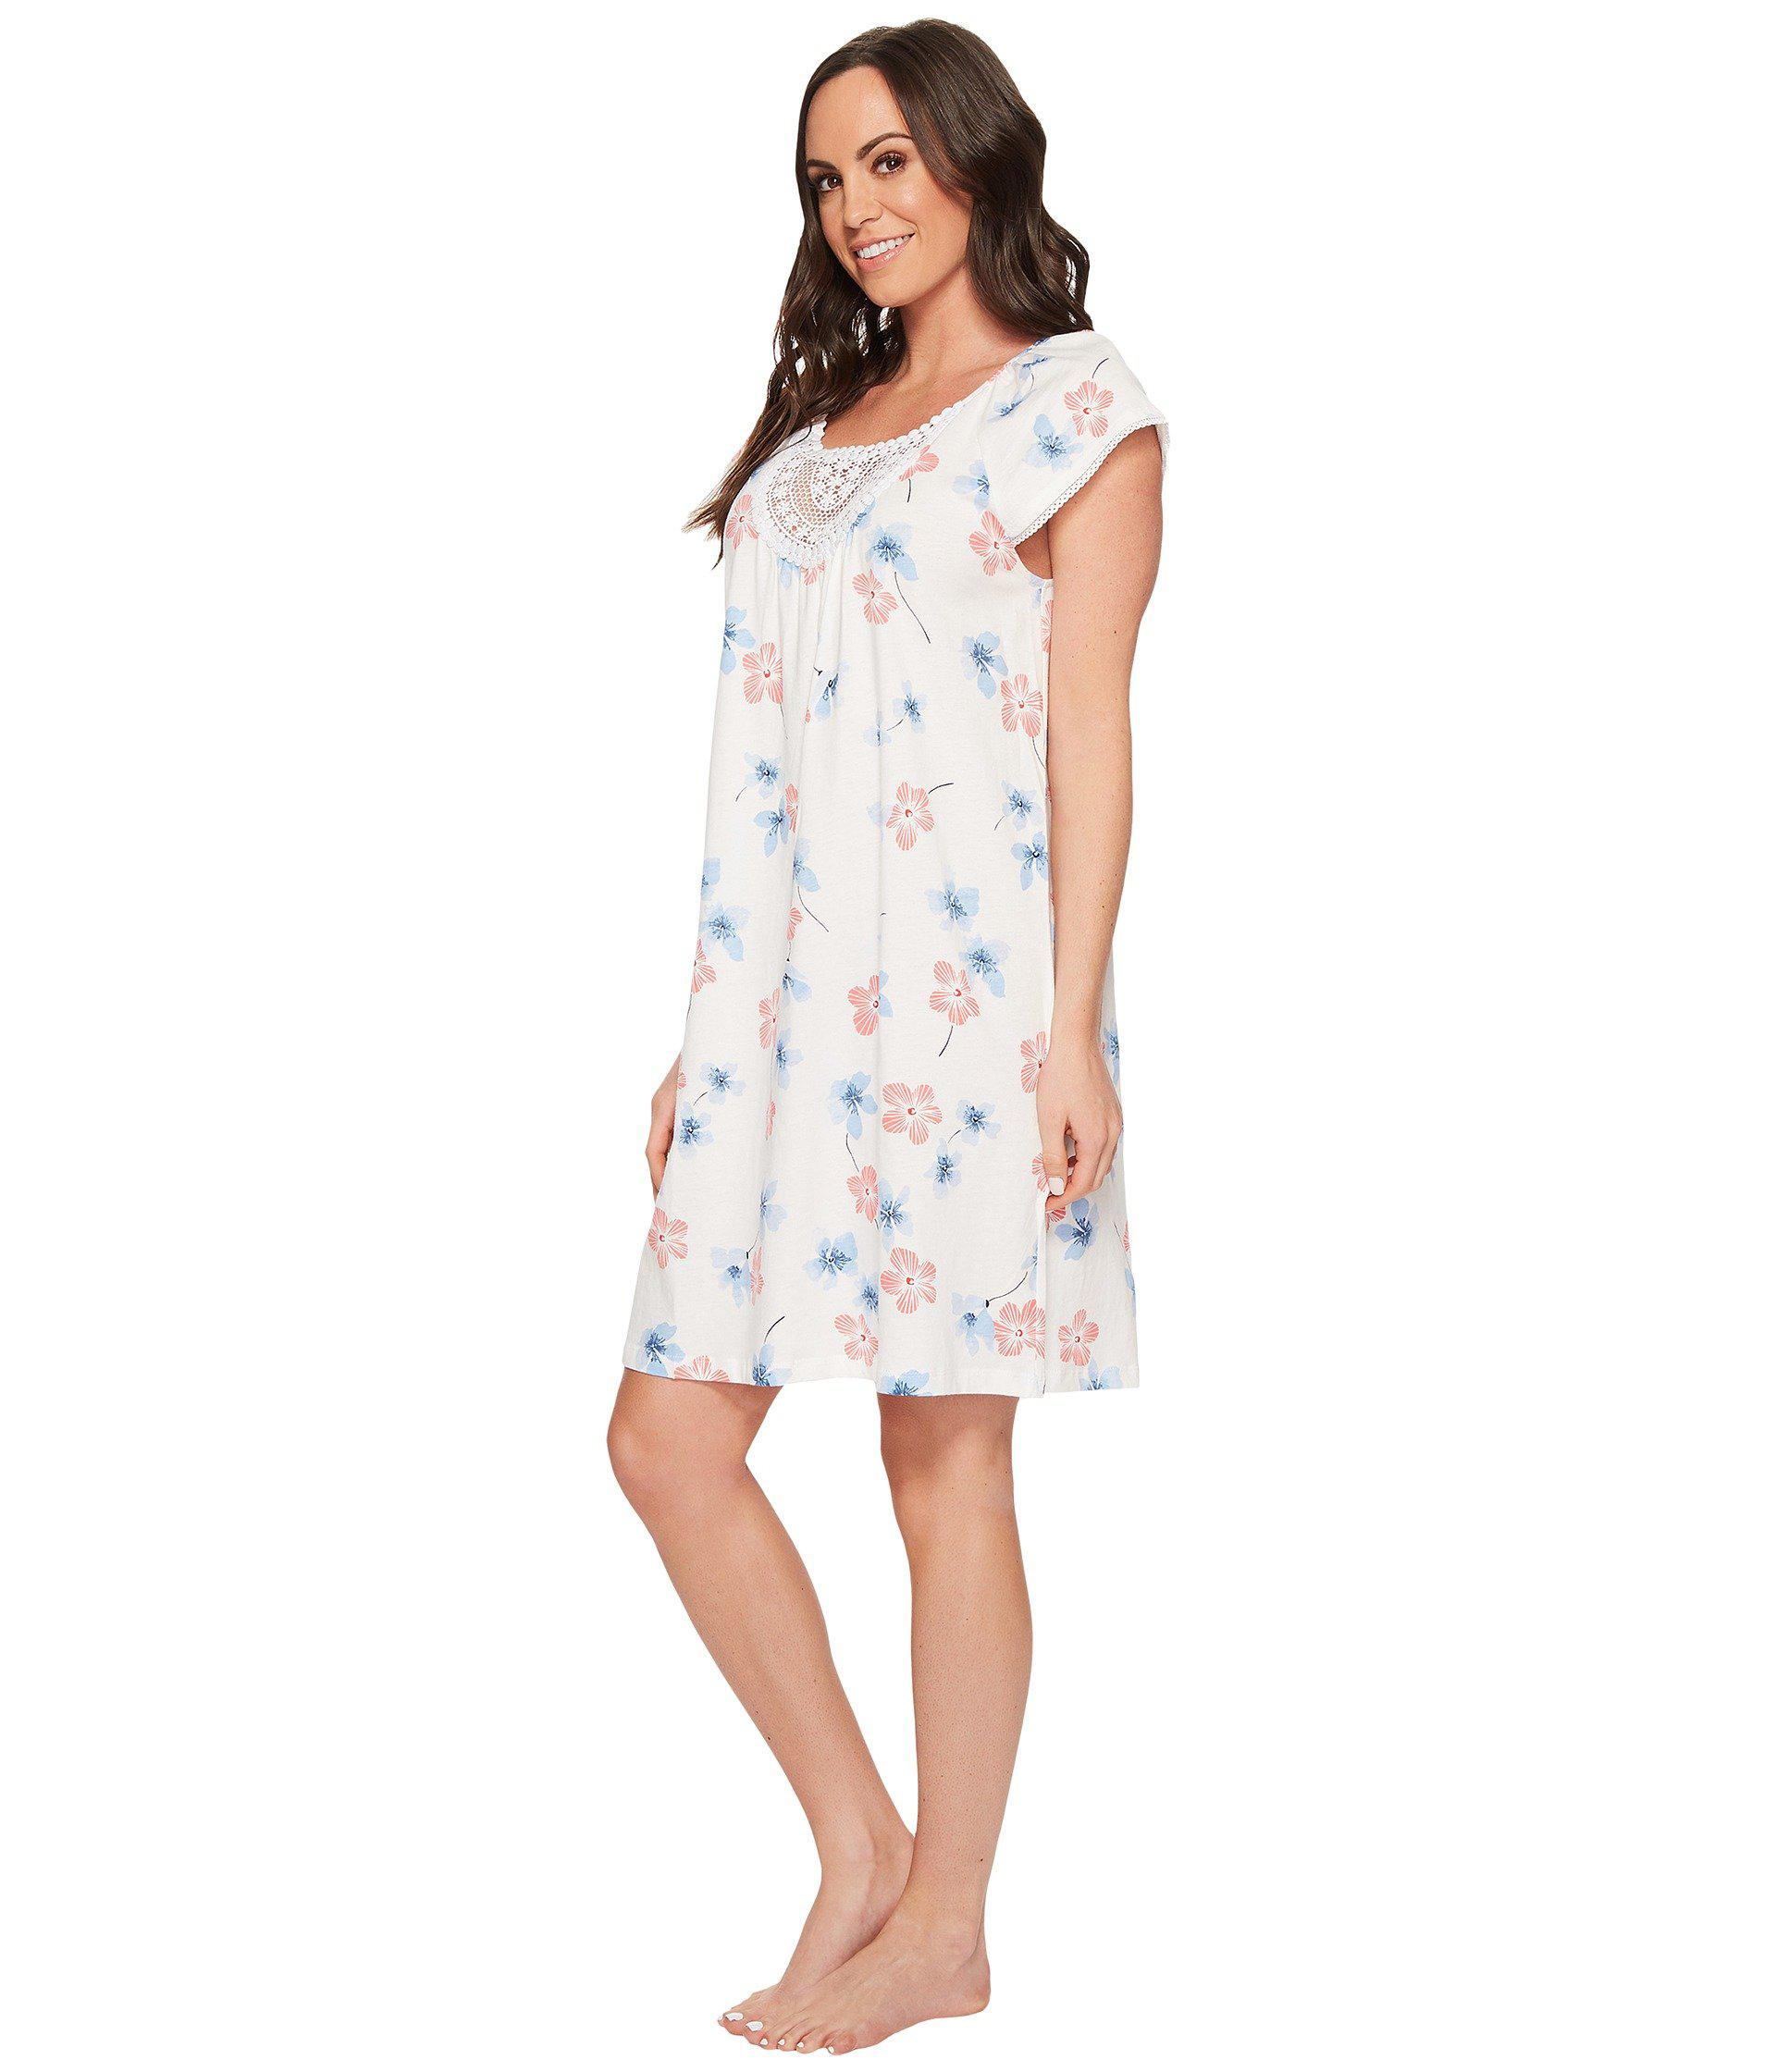 Lyst - Carole Hochman Floral Print Short Gown in White - Save 15%